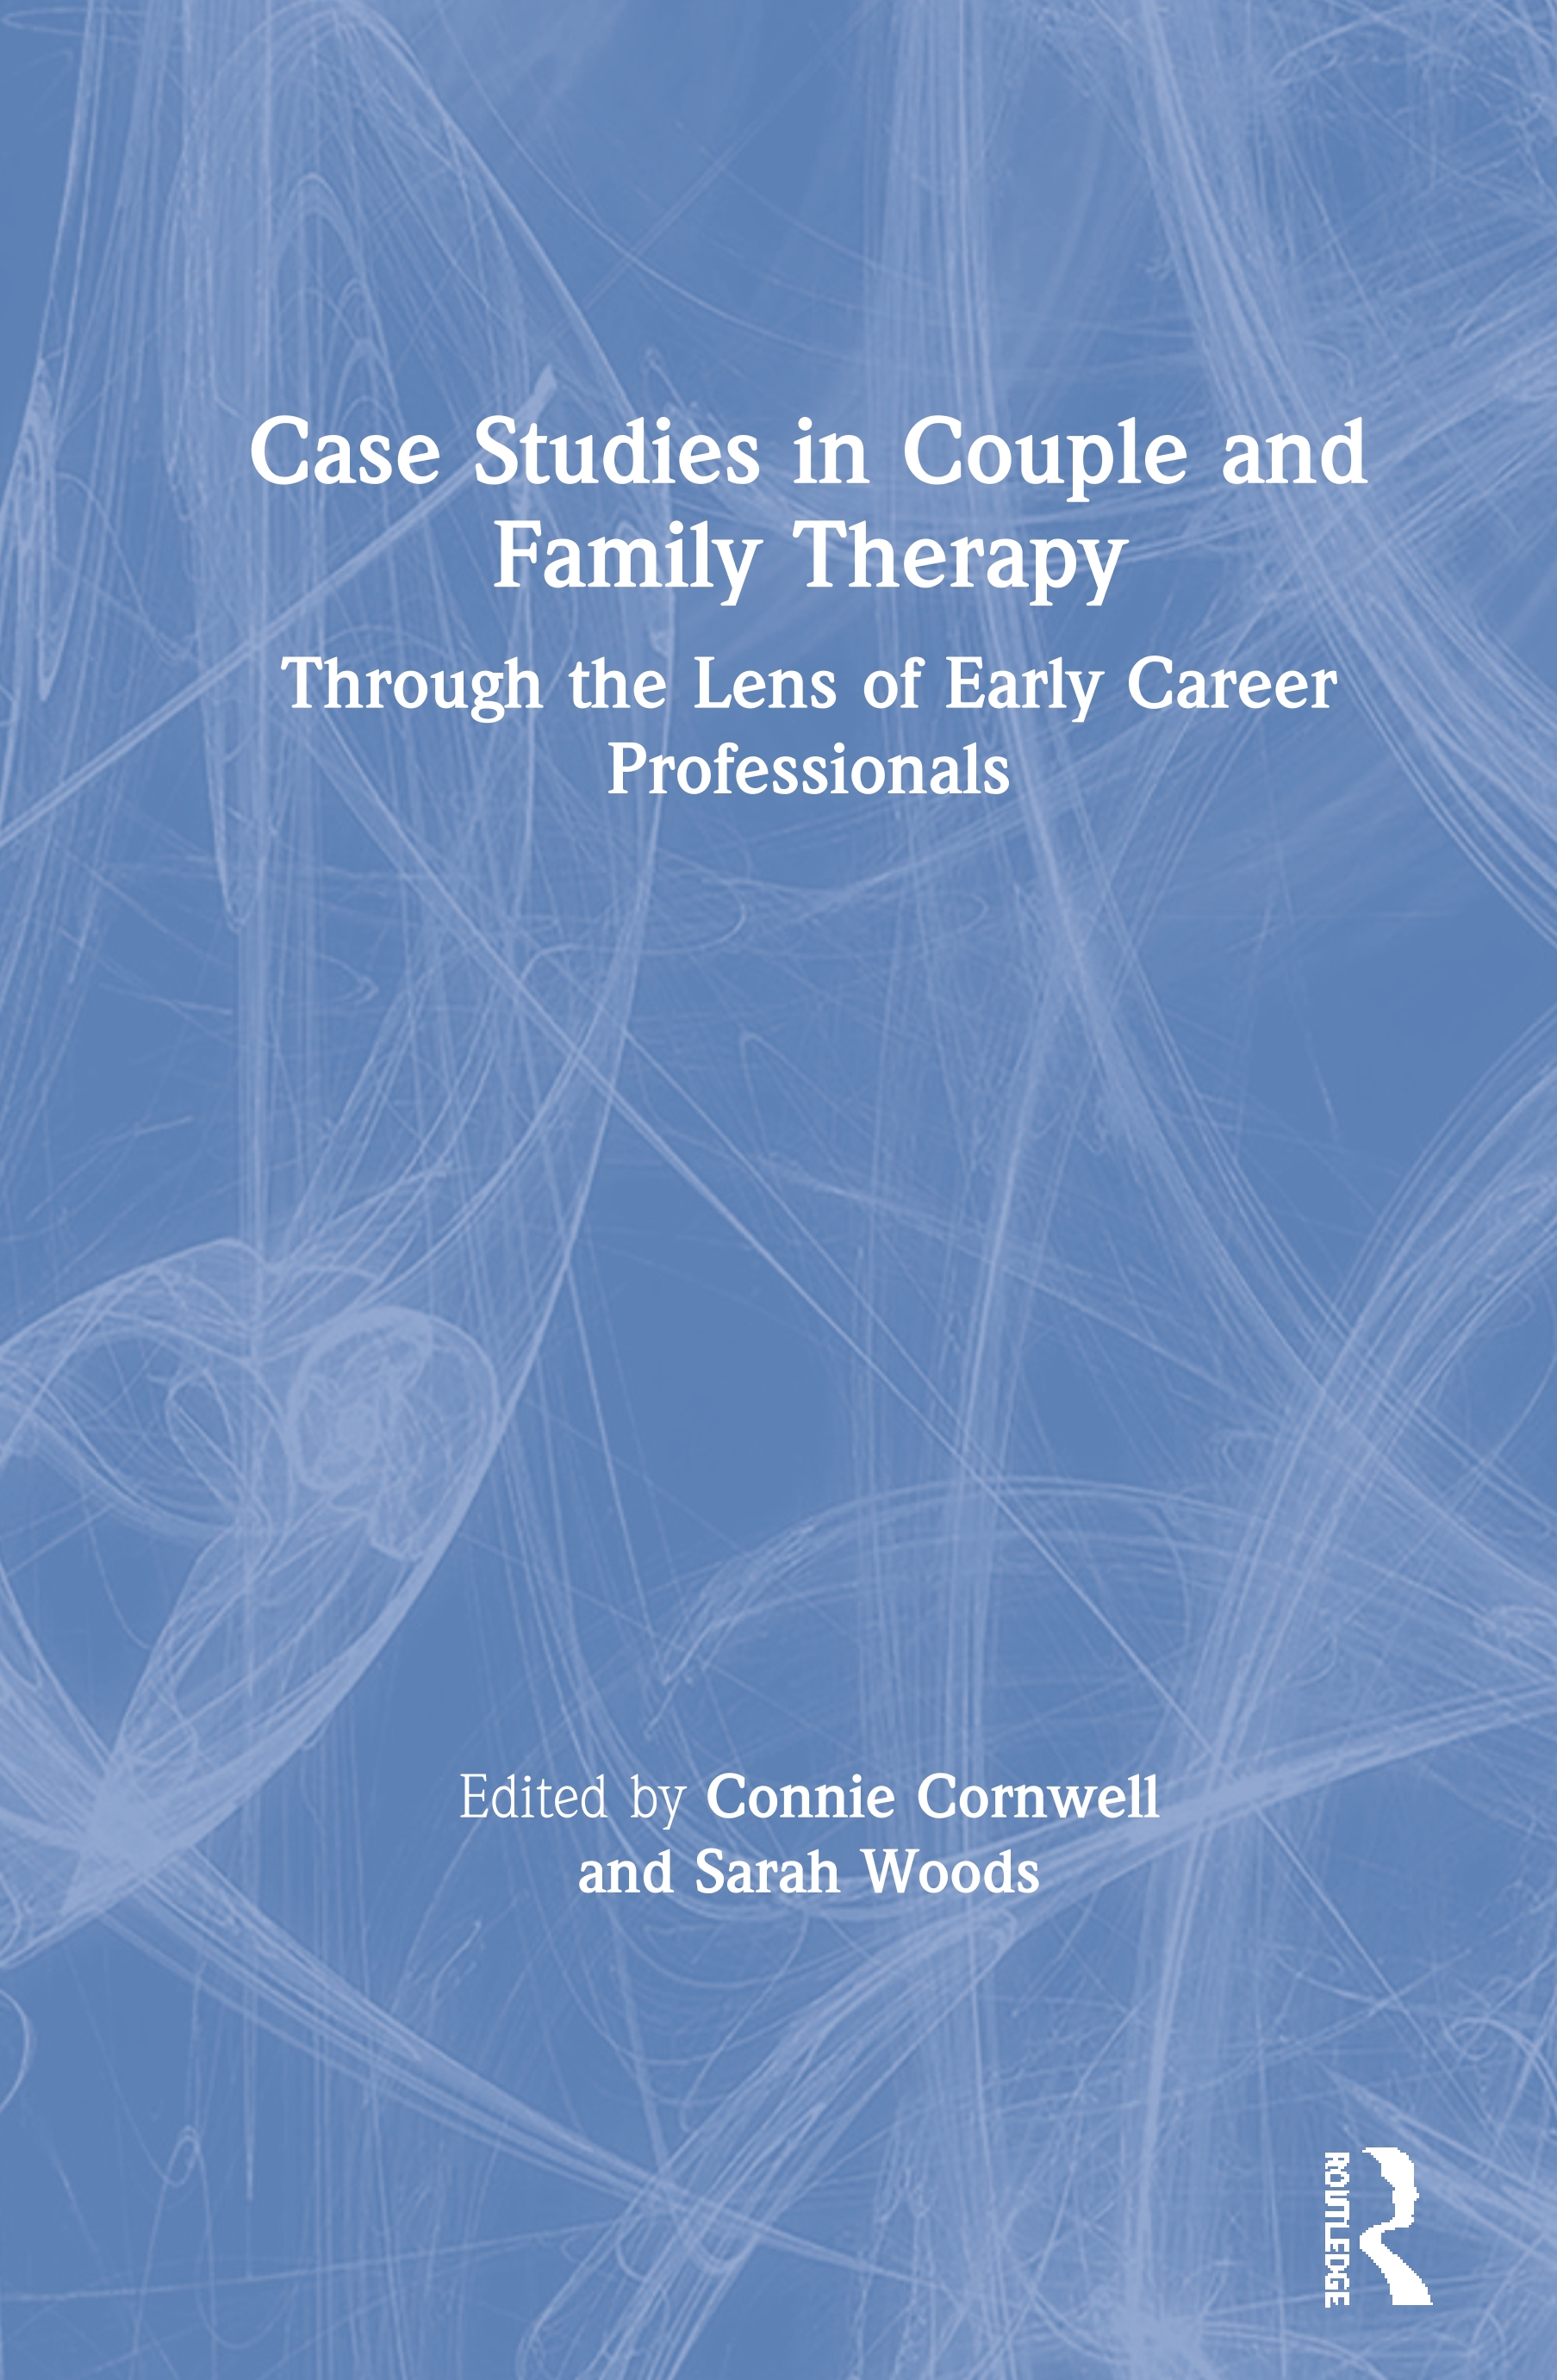 Case Studies in Couple and Family Therapy: Through the Lens of Early Career Professionals book cover